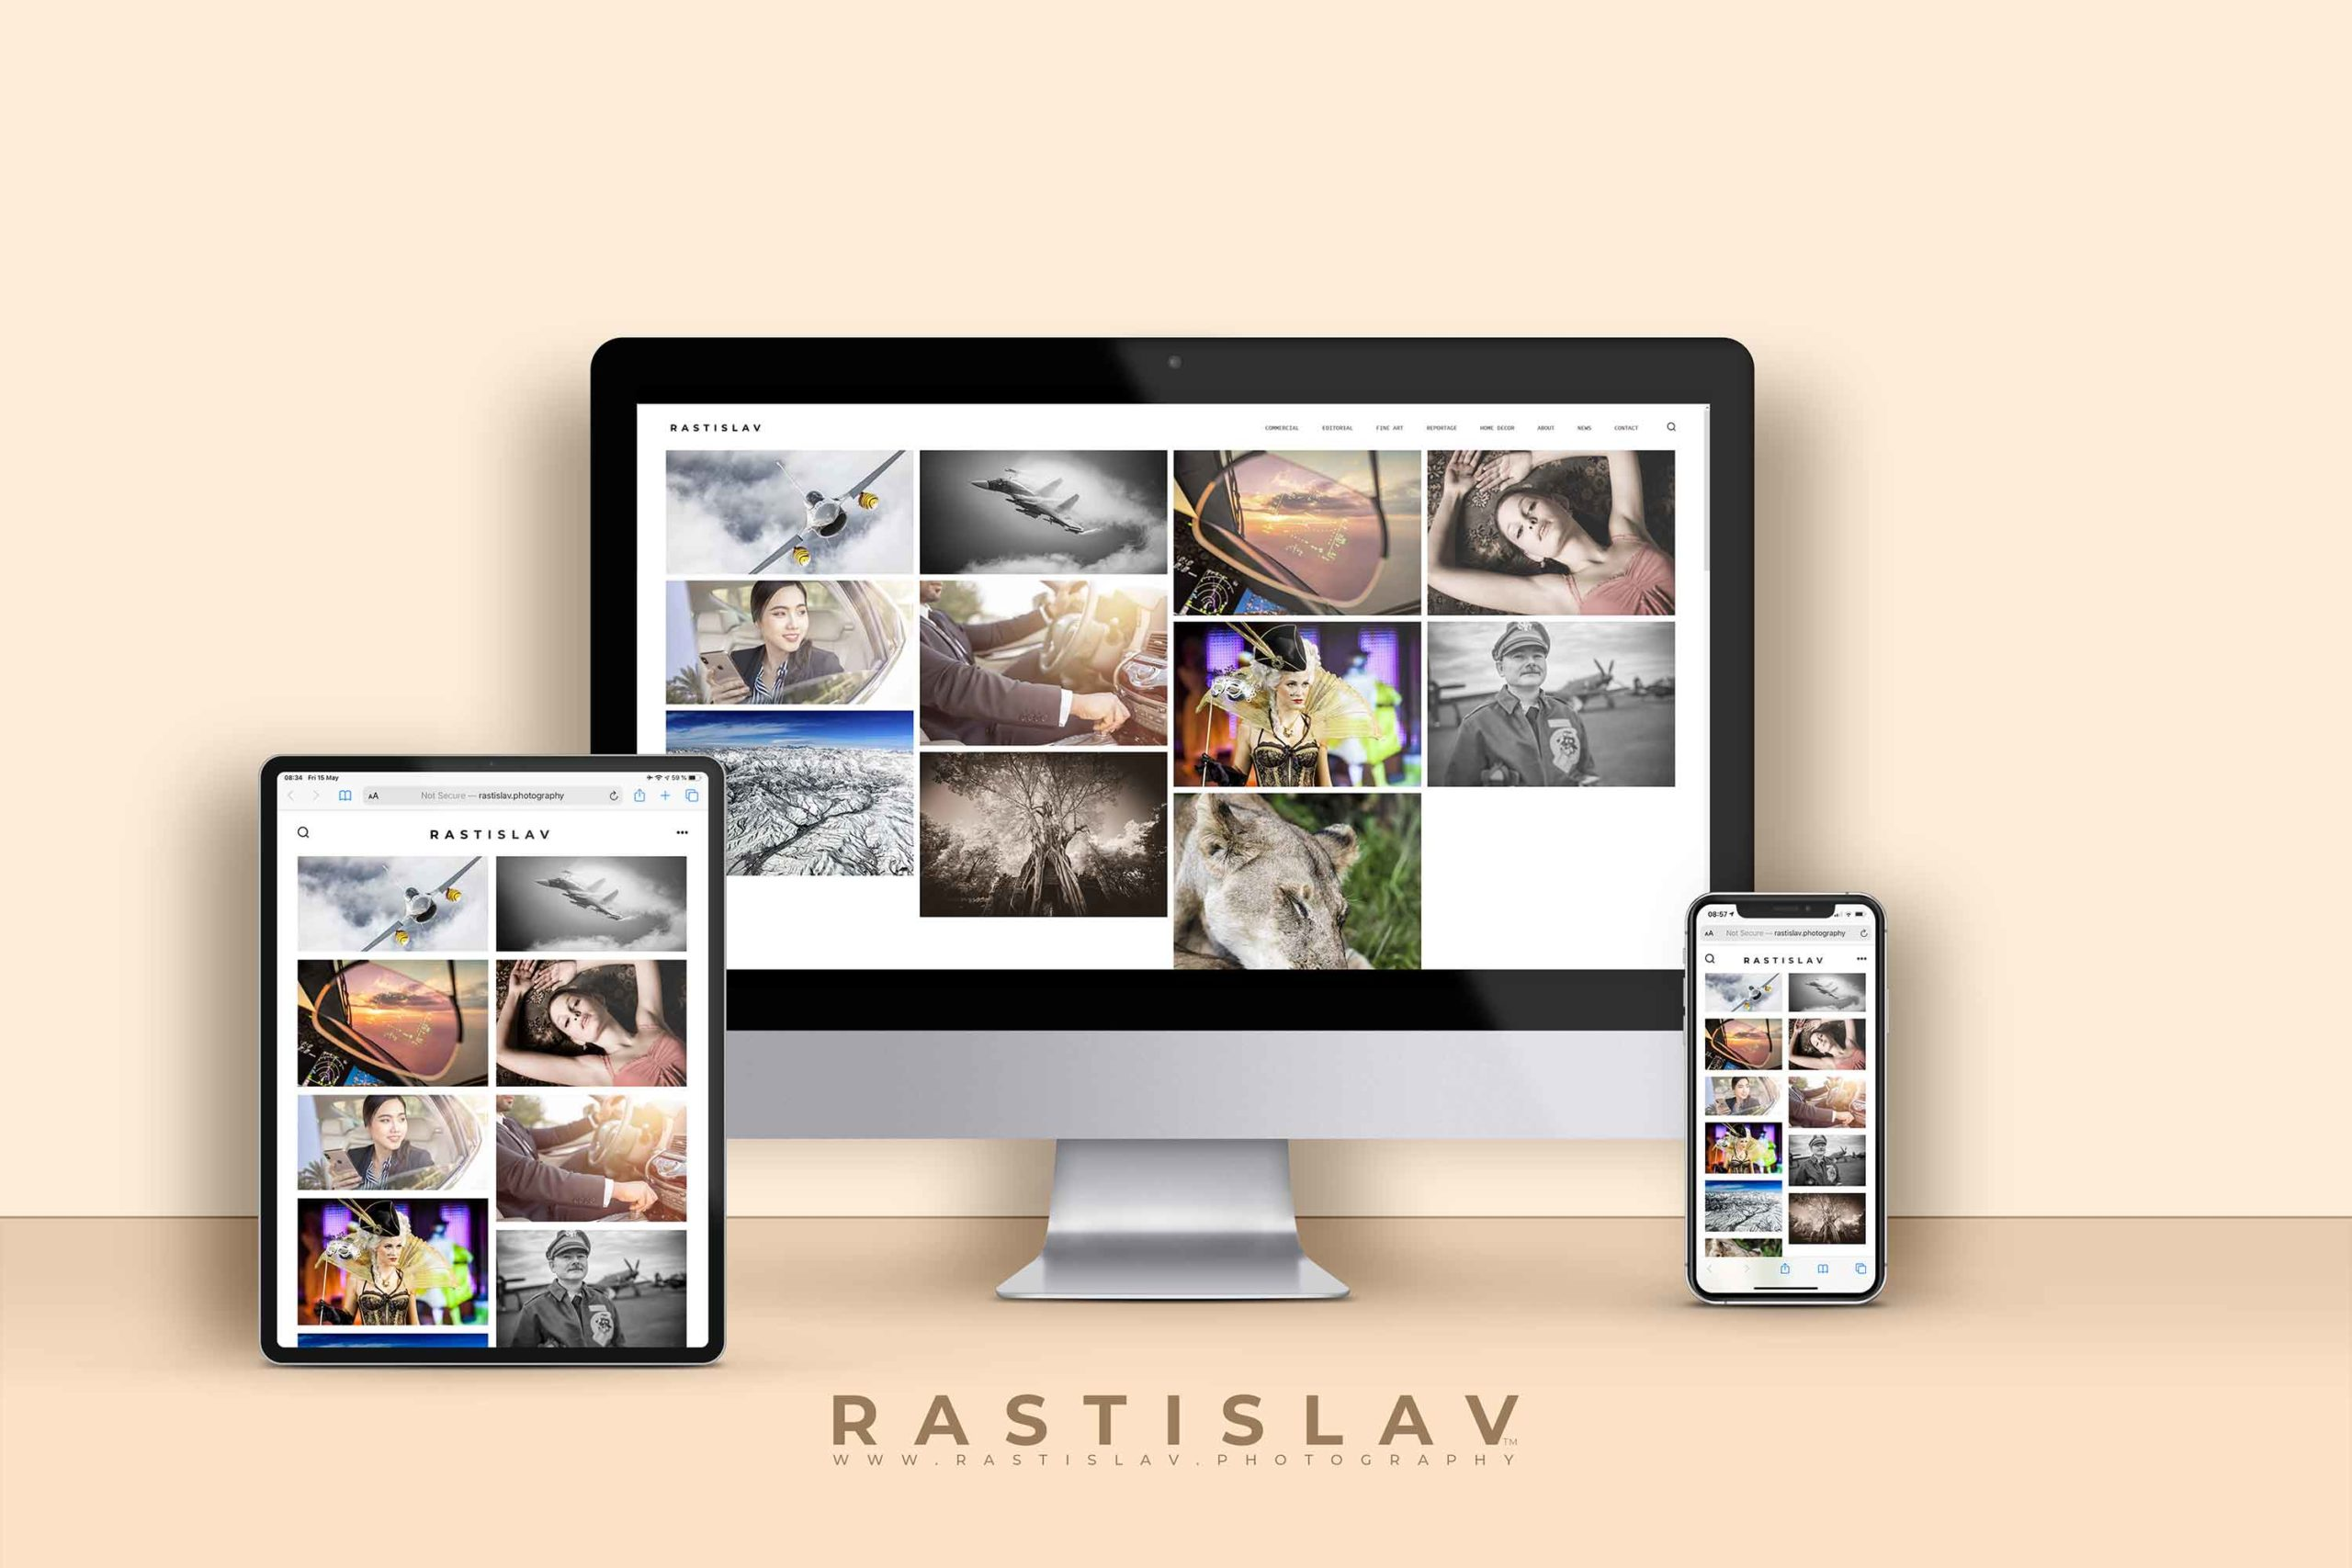 RASTISLAV – Premium Photography Solutions